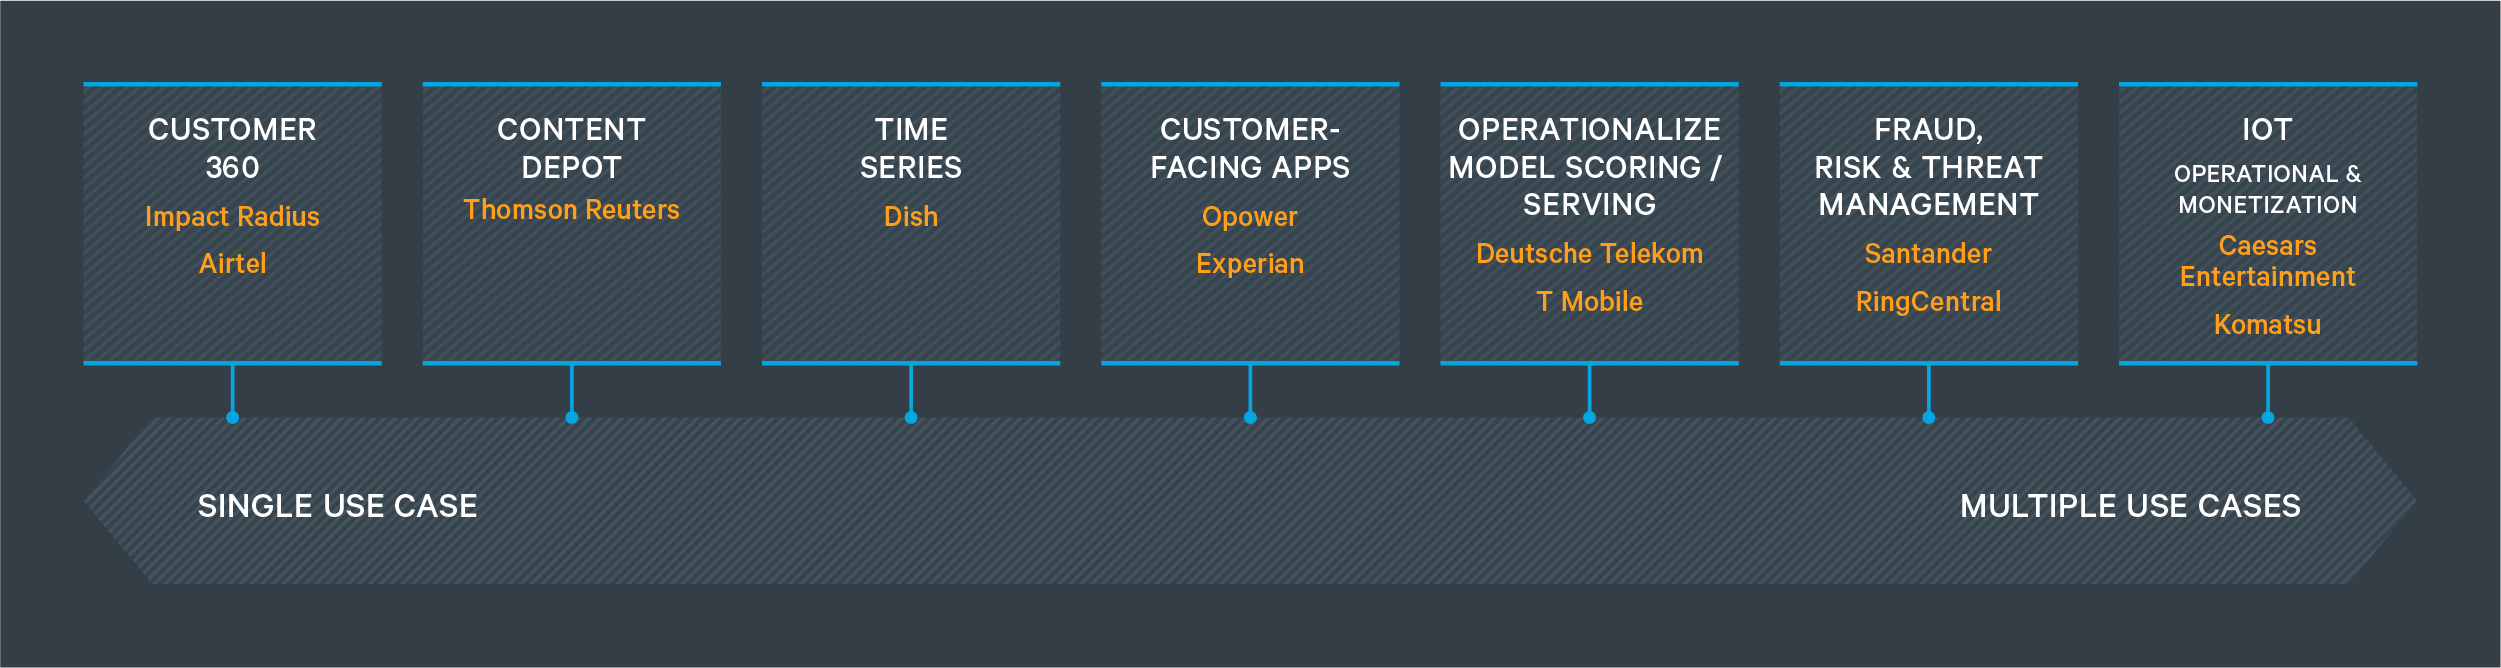 Operational DB Use Cases